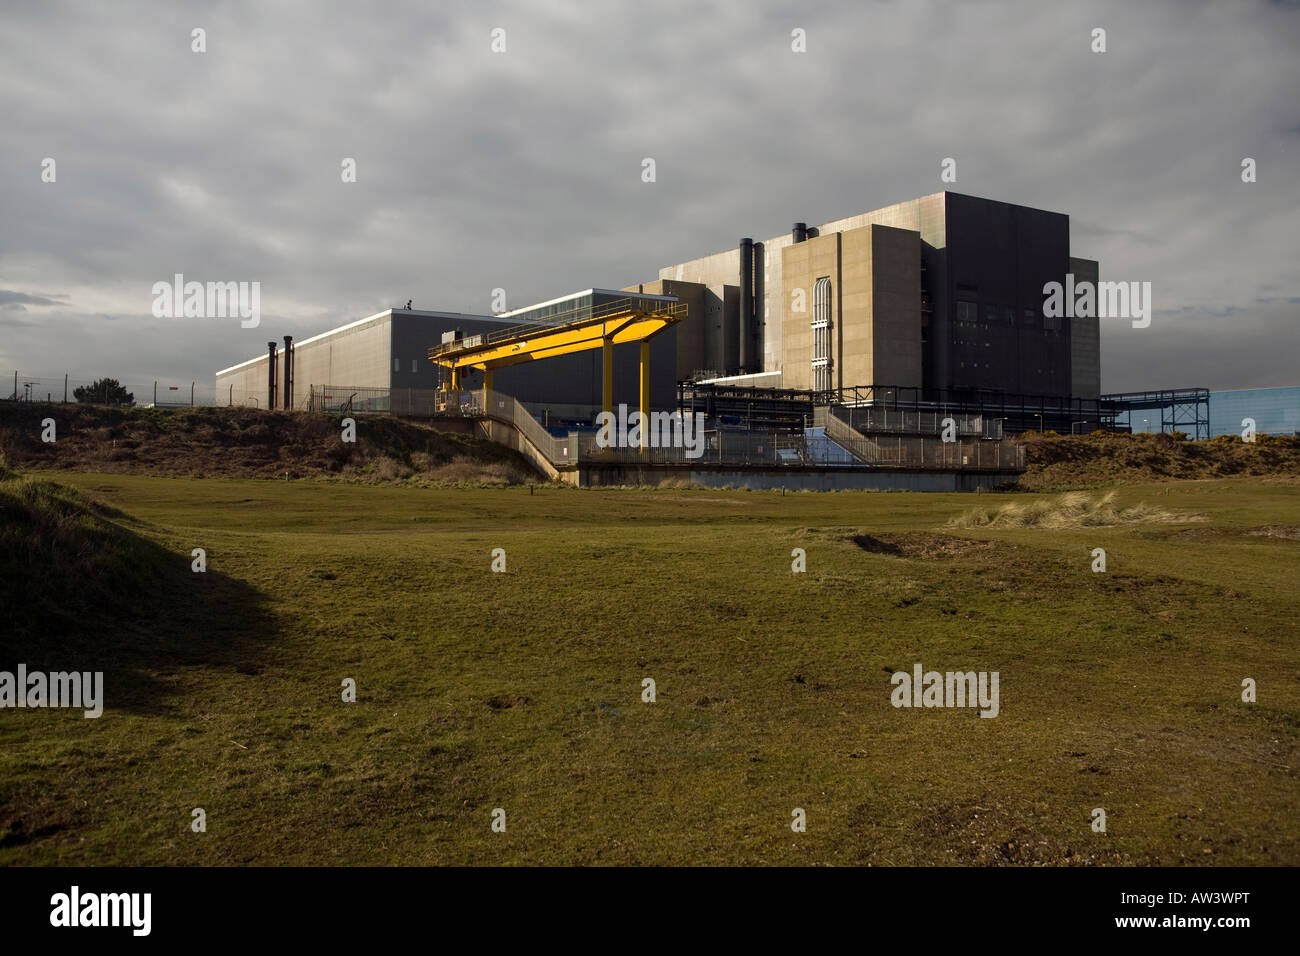 Sizewell A Nuclear Power Station, now decommissioned, on the Suffolk coast of Britain - Stock Image